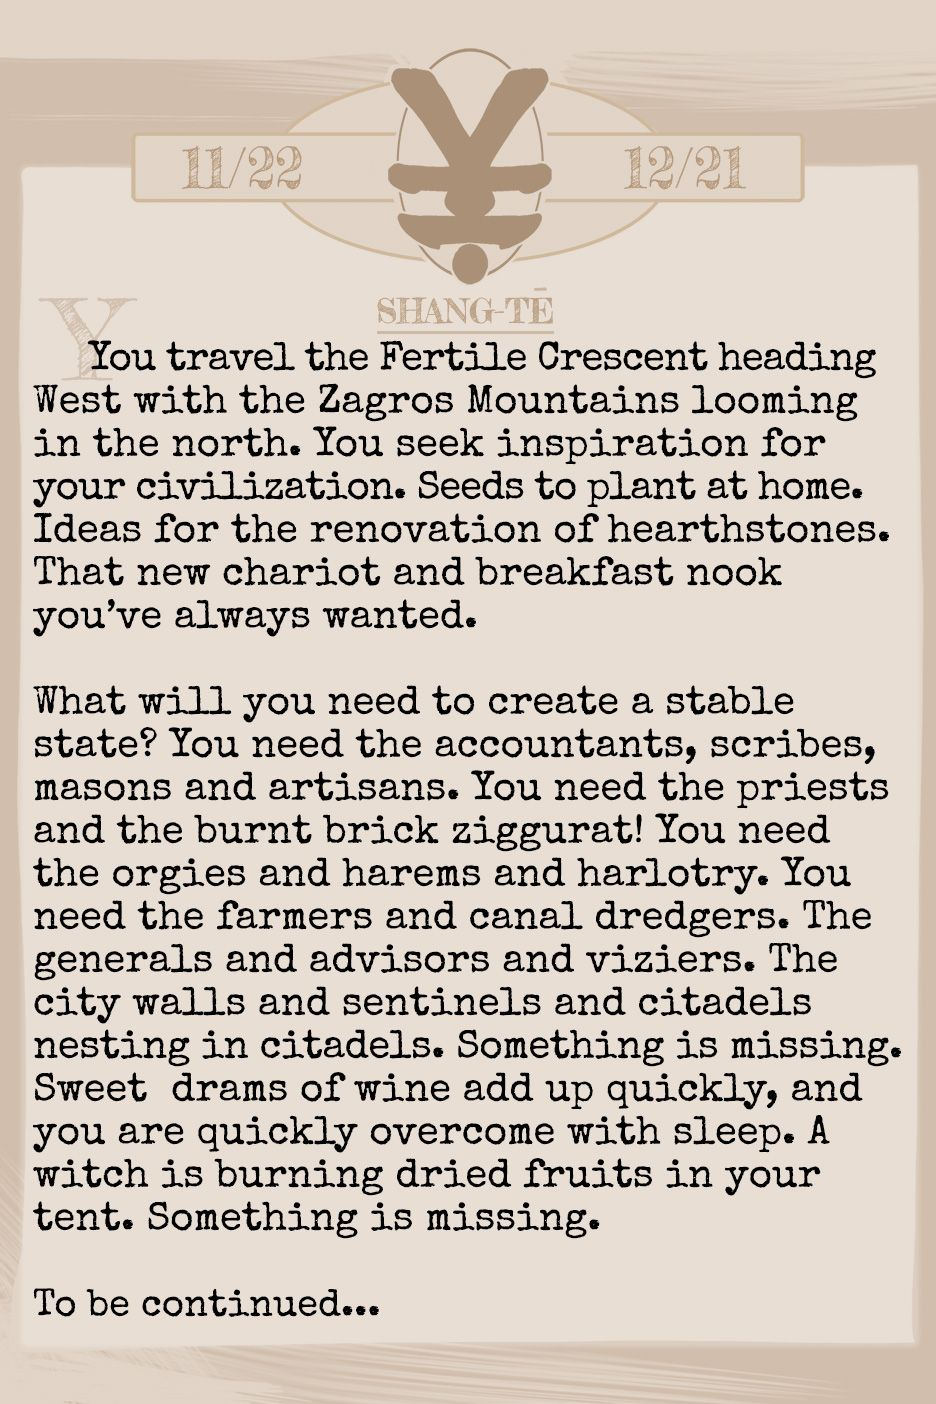 June 2019 Horoscope (Old sign: Sagitarius) You travel the Fertile Crescent heading West with the Zagros Mountains looming in the north. You seek inspiration for your civilization. Seeds to plant at home. Ideas for the renovation of hearthstones. That new chariot and breakfast nook you've always wanted. What will you need to create a stable state? You need the accountants, scribes, masons and artisans. You need the priests and the burnt brick ziggurat! You need the orgies and harems and harlotry. You need the farmers and canal dredgers. The generals and advisors and viziers. The city walls and sentinels and citadels nesting in citadels. Something is missing. Sweet drams of wine add up quickly, and you are quickly overcome with sleep. A witch is burning dried fruits in your tent. Something is missing. To be continued...